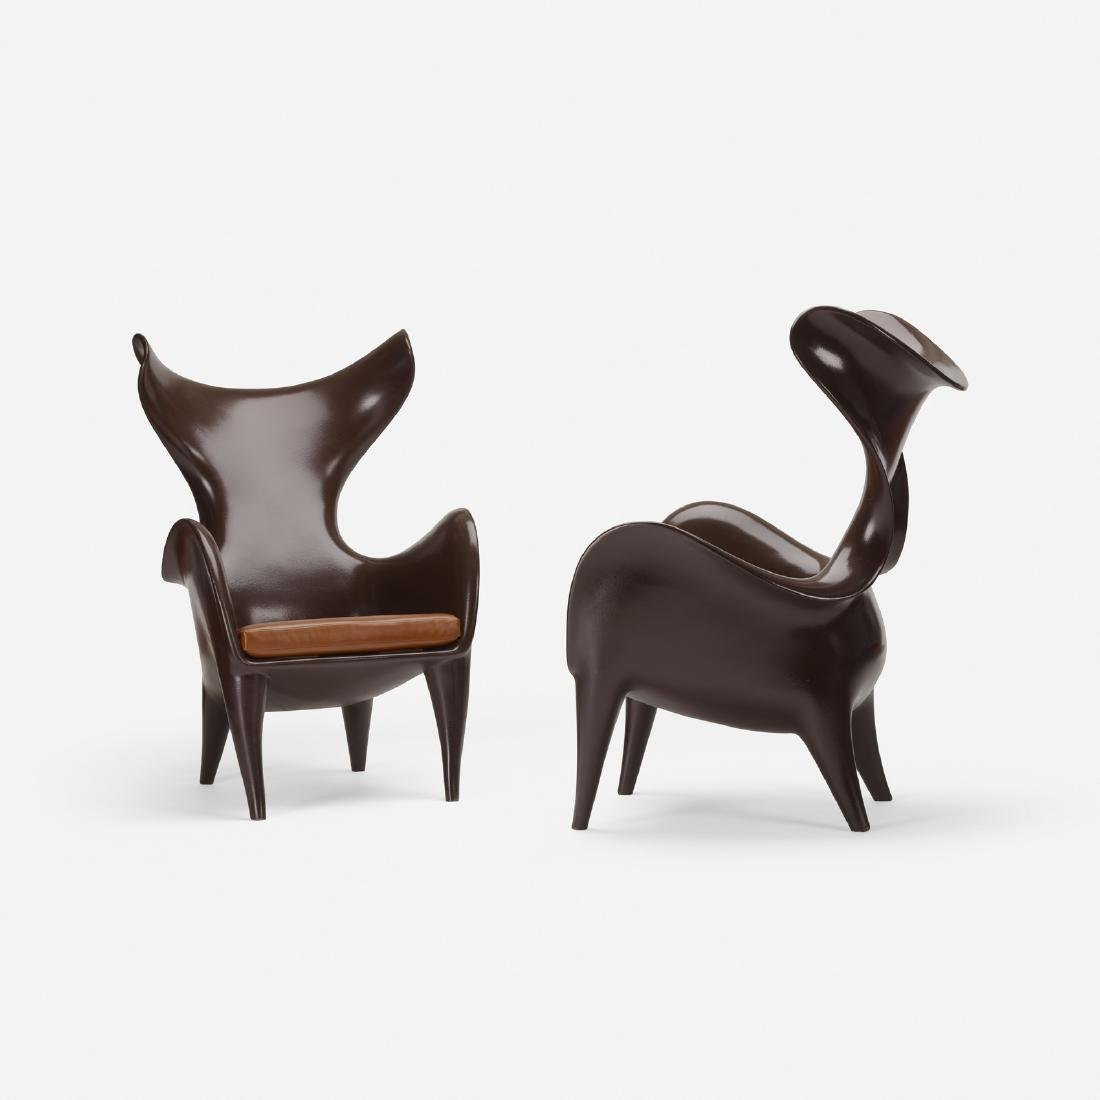 Jordan Mozer, Frankie goes to Houston chairs, pair - 2